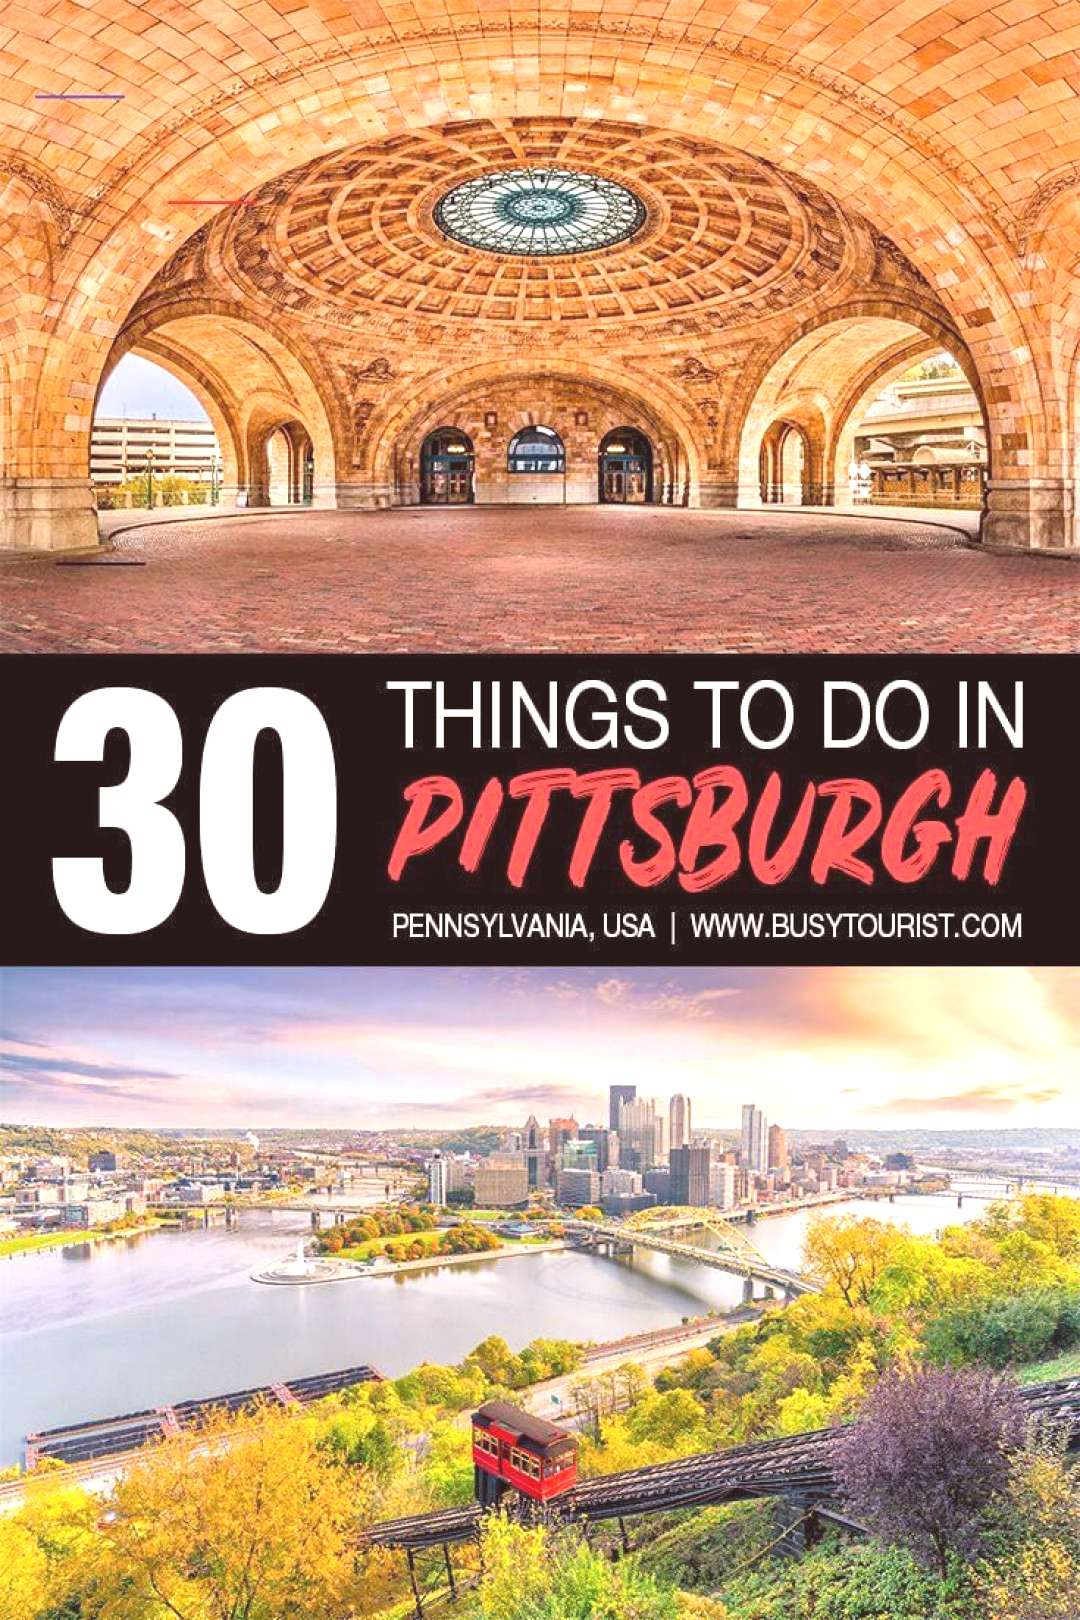 30 Best amp Fun Things To Do In Pittsburgh (Pennsylvania) 30 Best amp Fun Things To Do In Pittsburgh (P